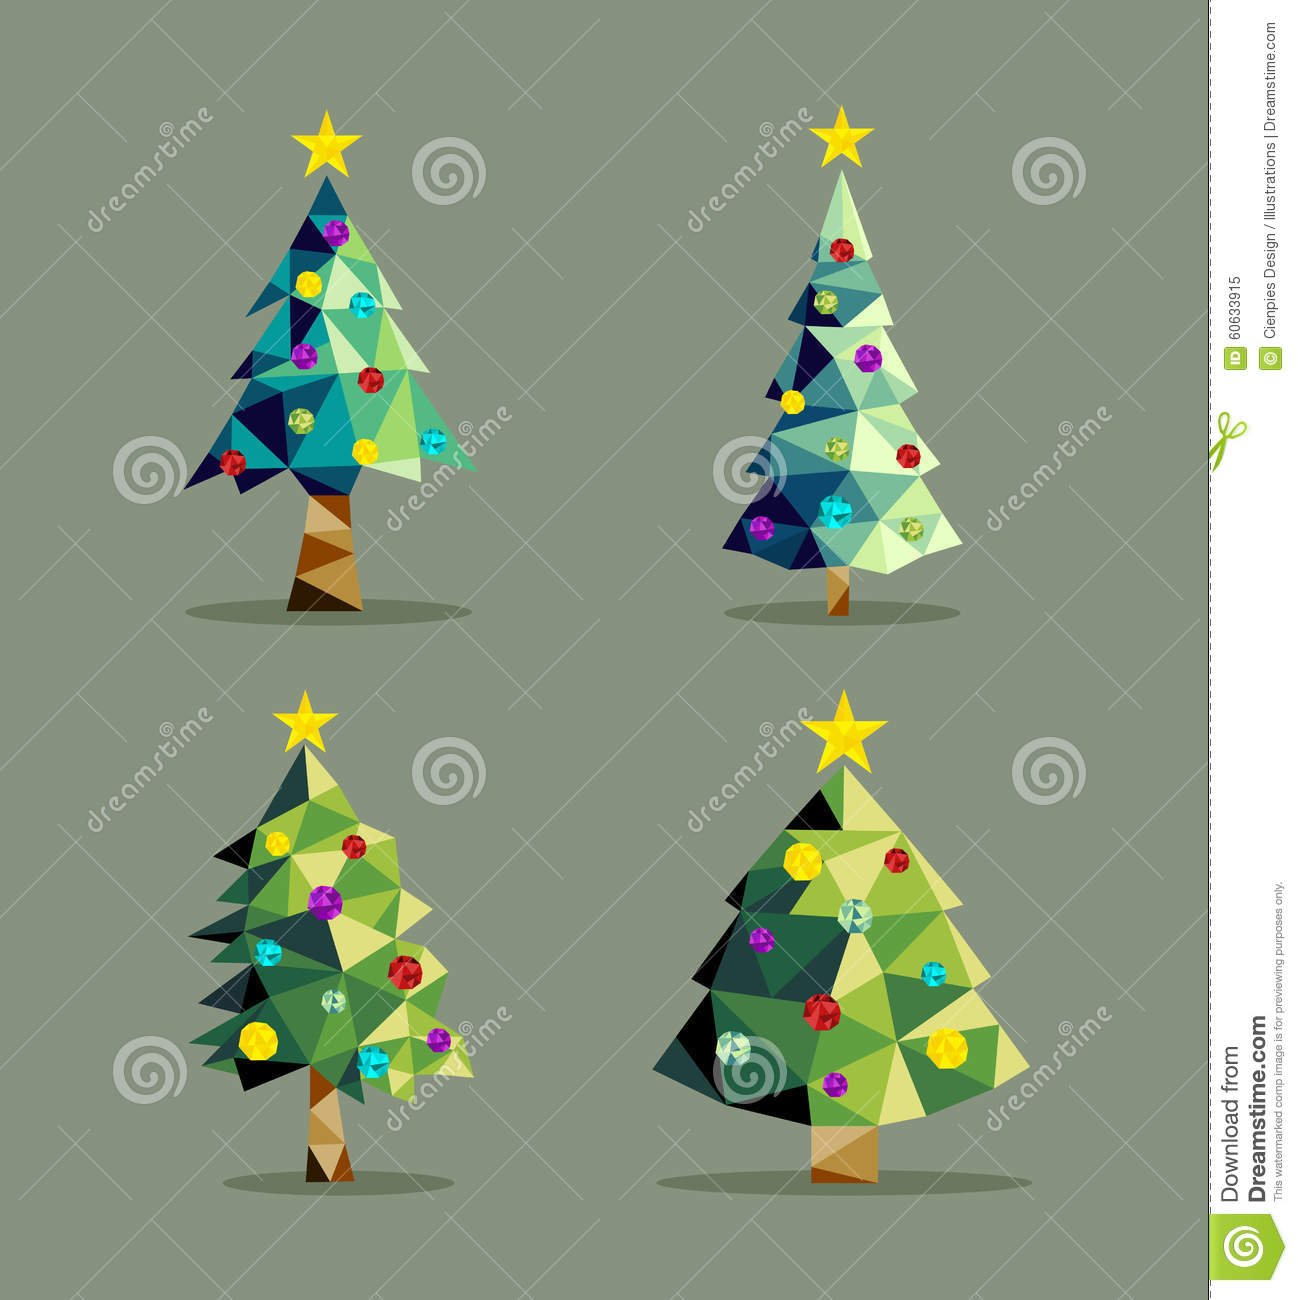 Christmas Tree Set Low Poly Triangle Ornaments Stock Vector ...